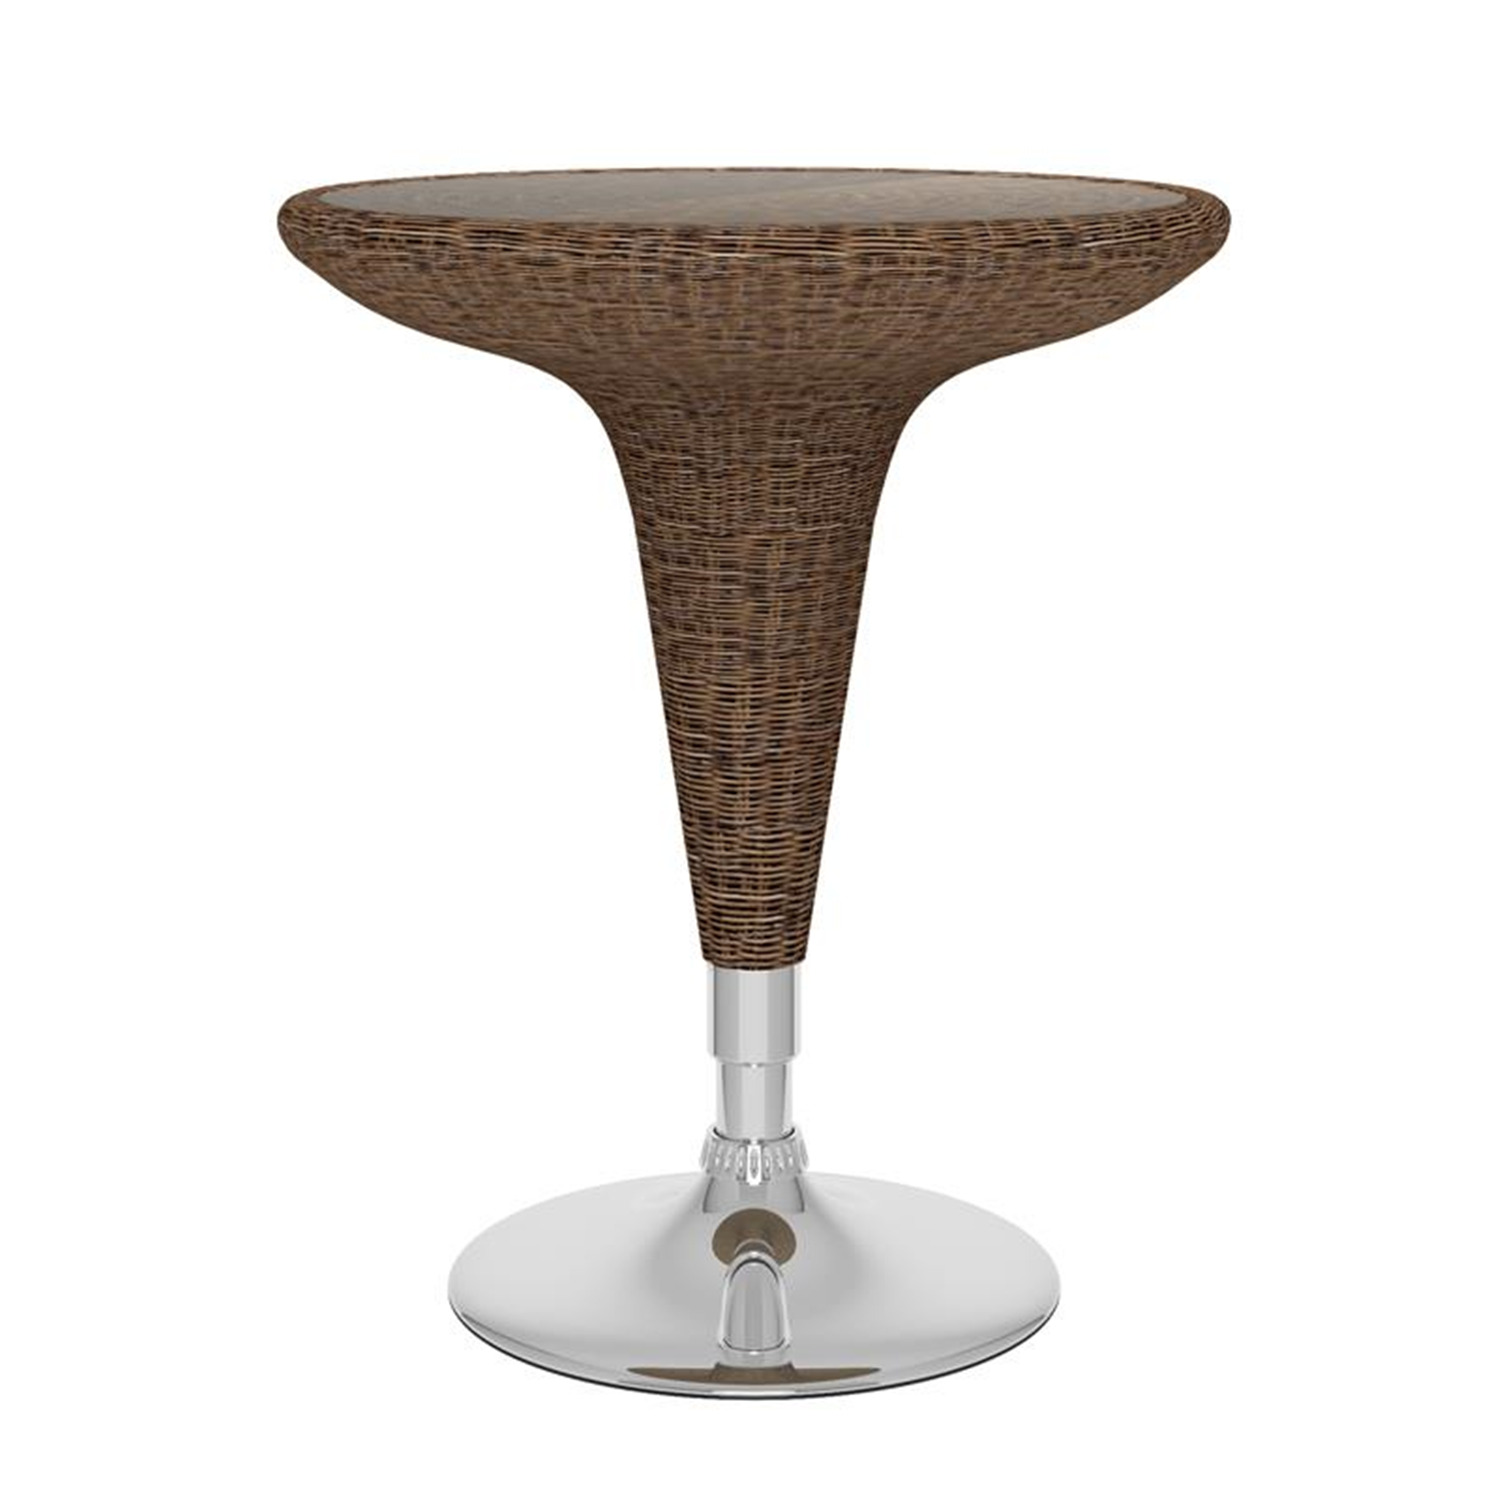 Sonax CorLiving Adjustable Bar Table in Varicoloured Brown Round Woven Vinyl